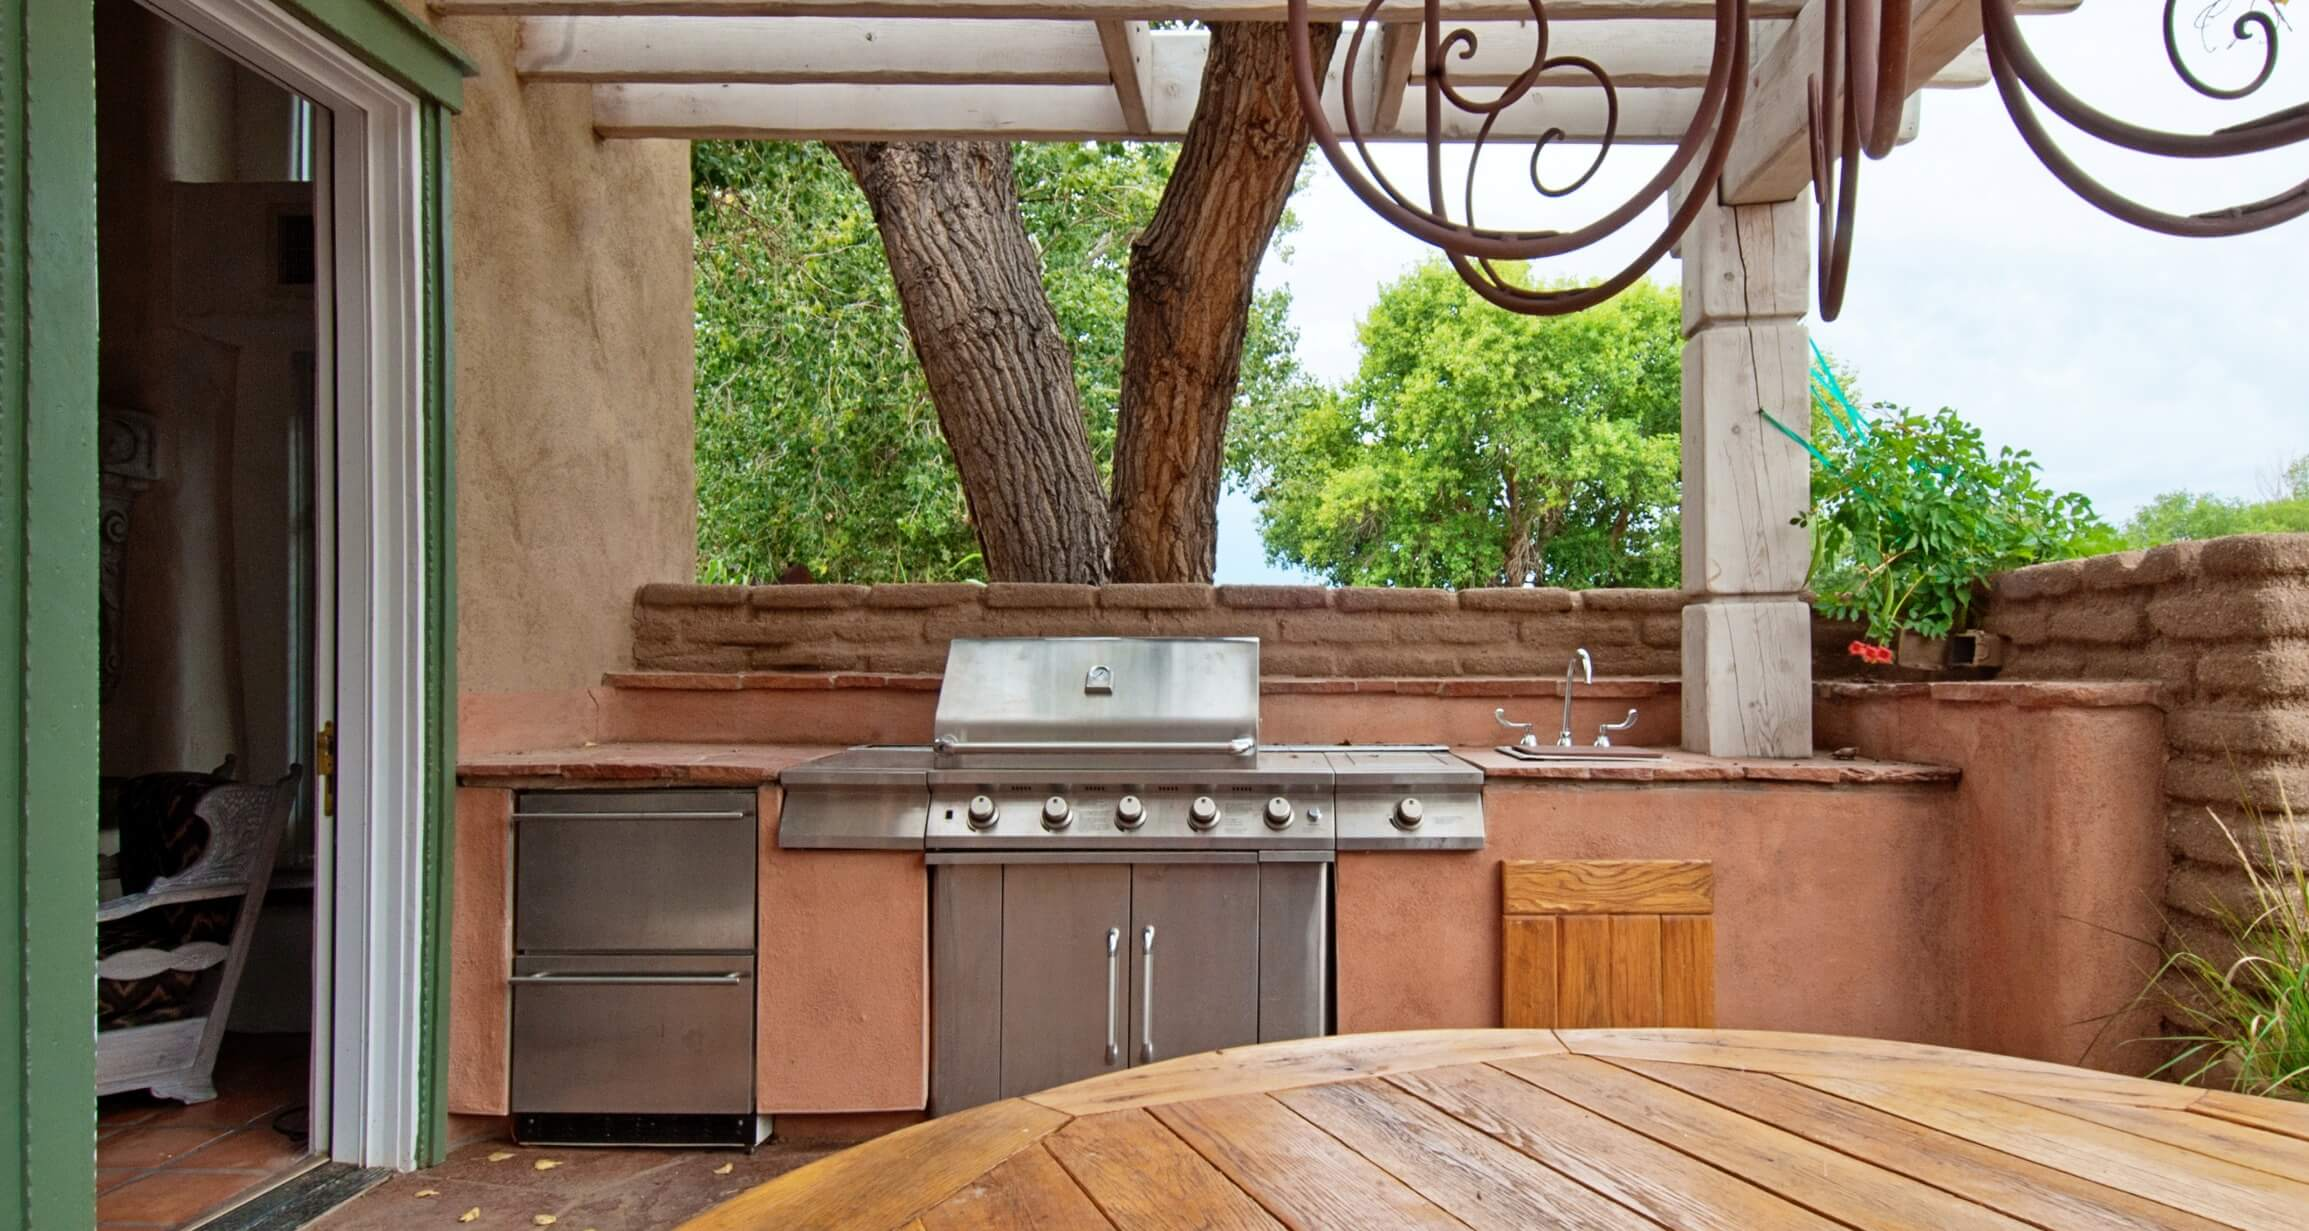 Get Ready For Summer: The Benefits Of Outdoor Kitchens